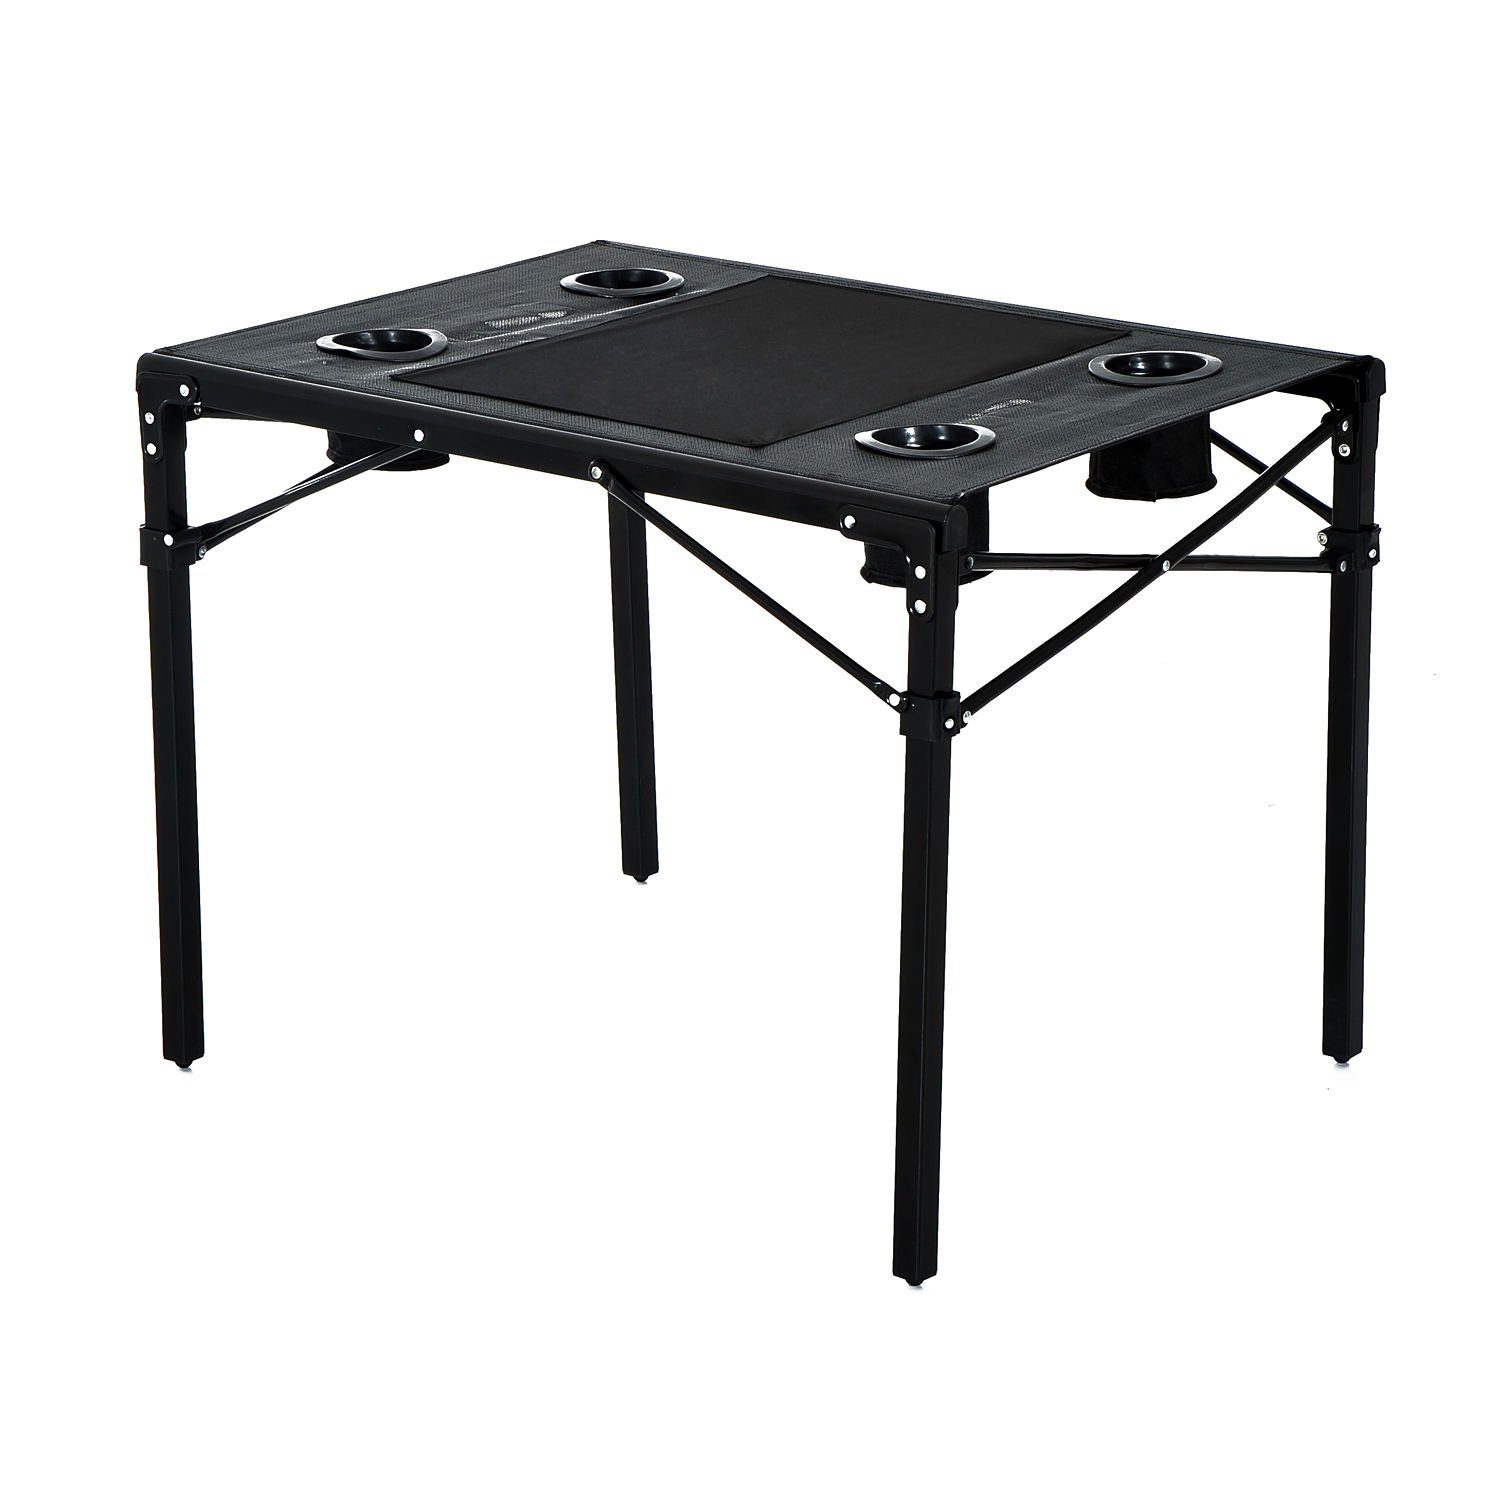 Outsunny Folding Camping Table with Cup Holders - Black